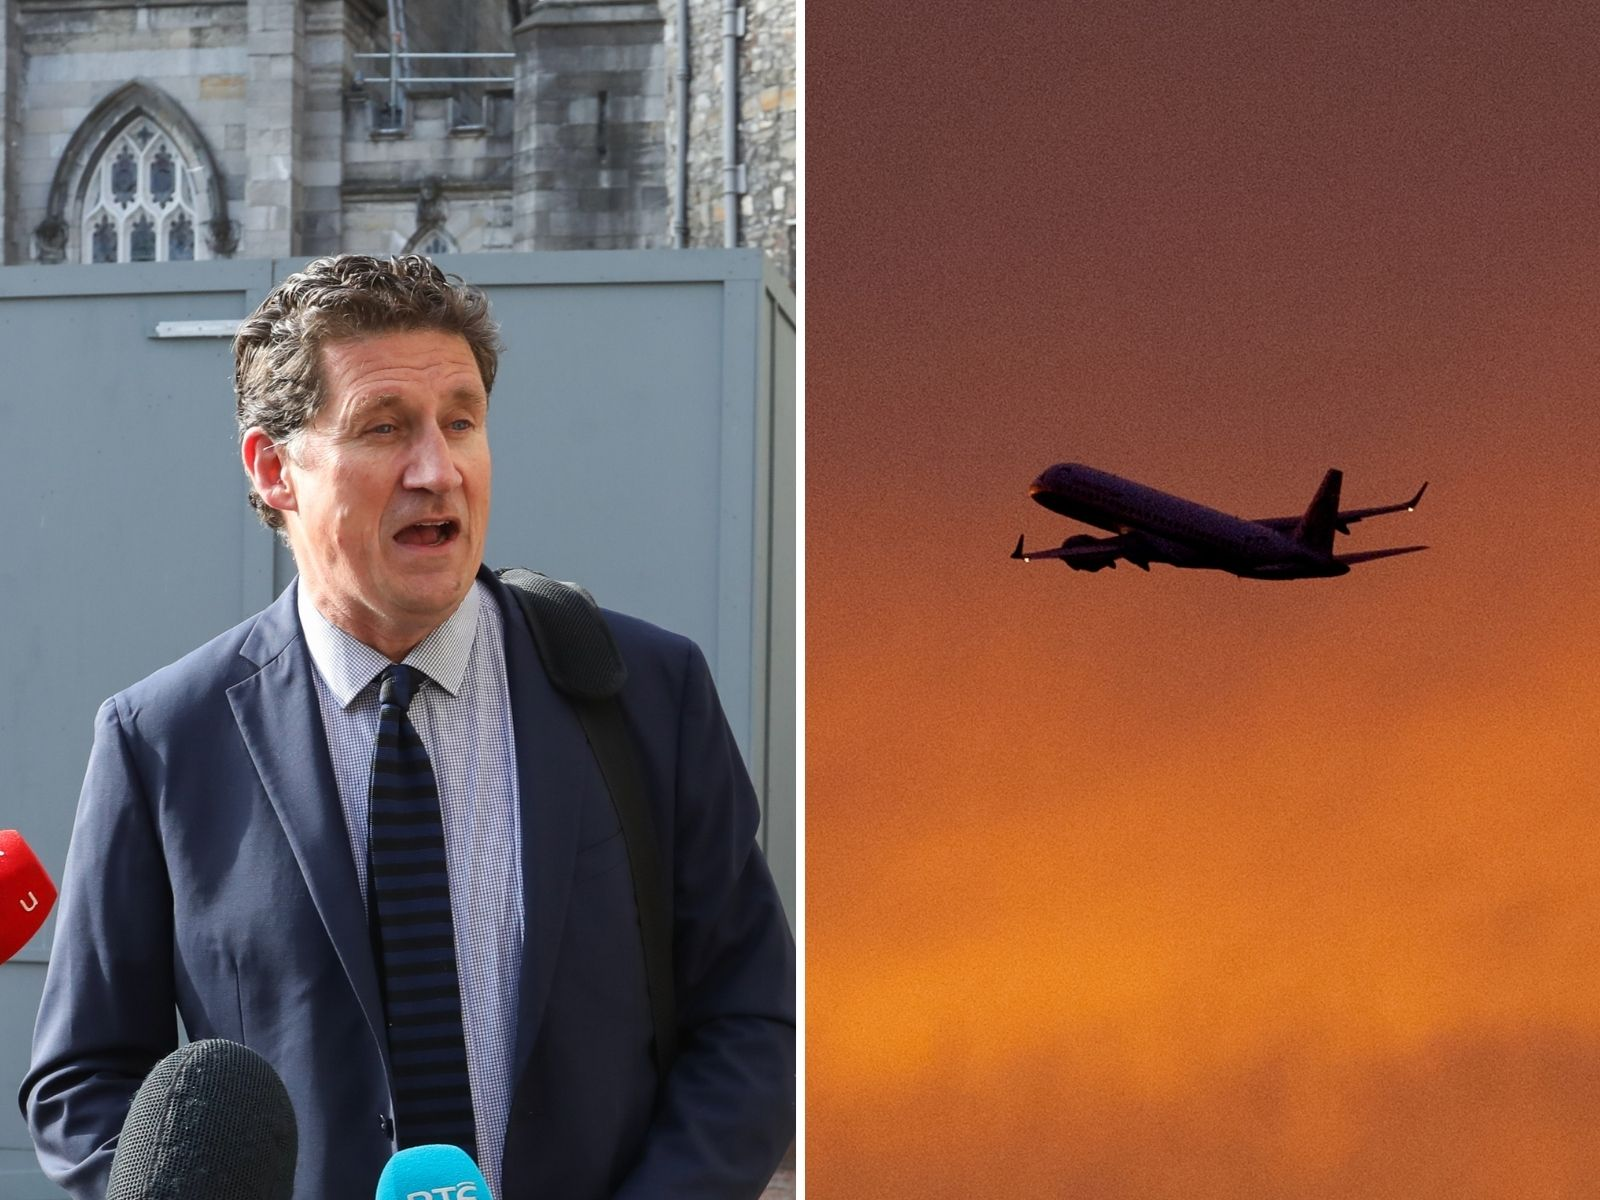 Composite image shows Transport Minister Eamon Ryan at Dublin Castle ahead of a Cabinet meeting and an aircraft taking off from Berlin's Tegel Airport in Germany in 2013